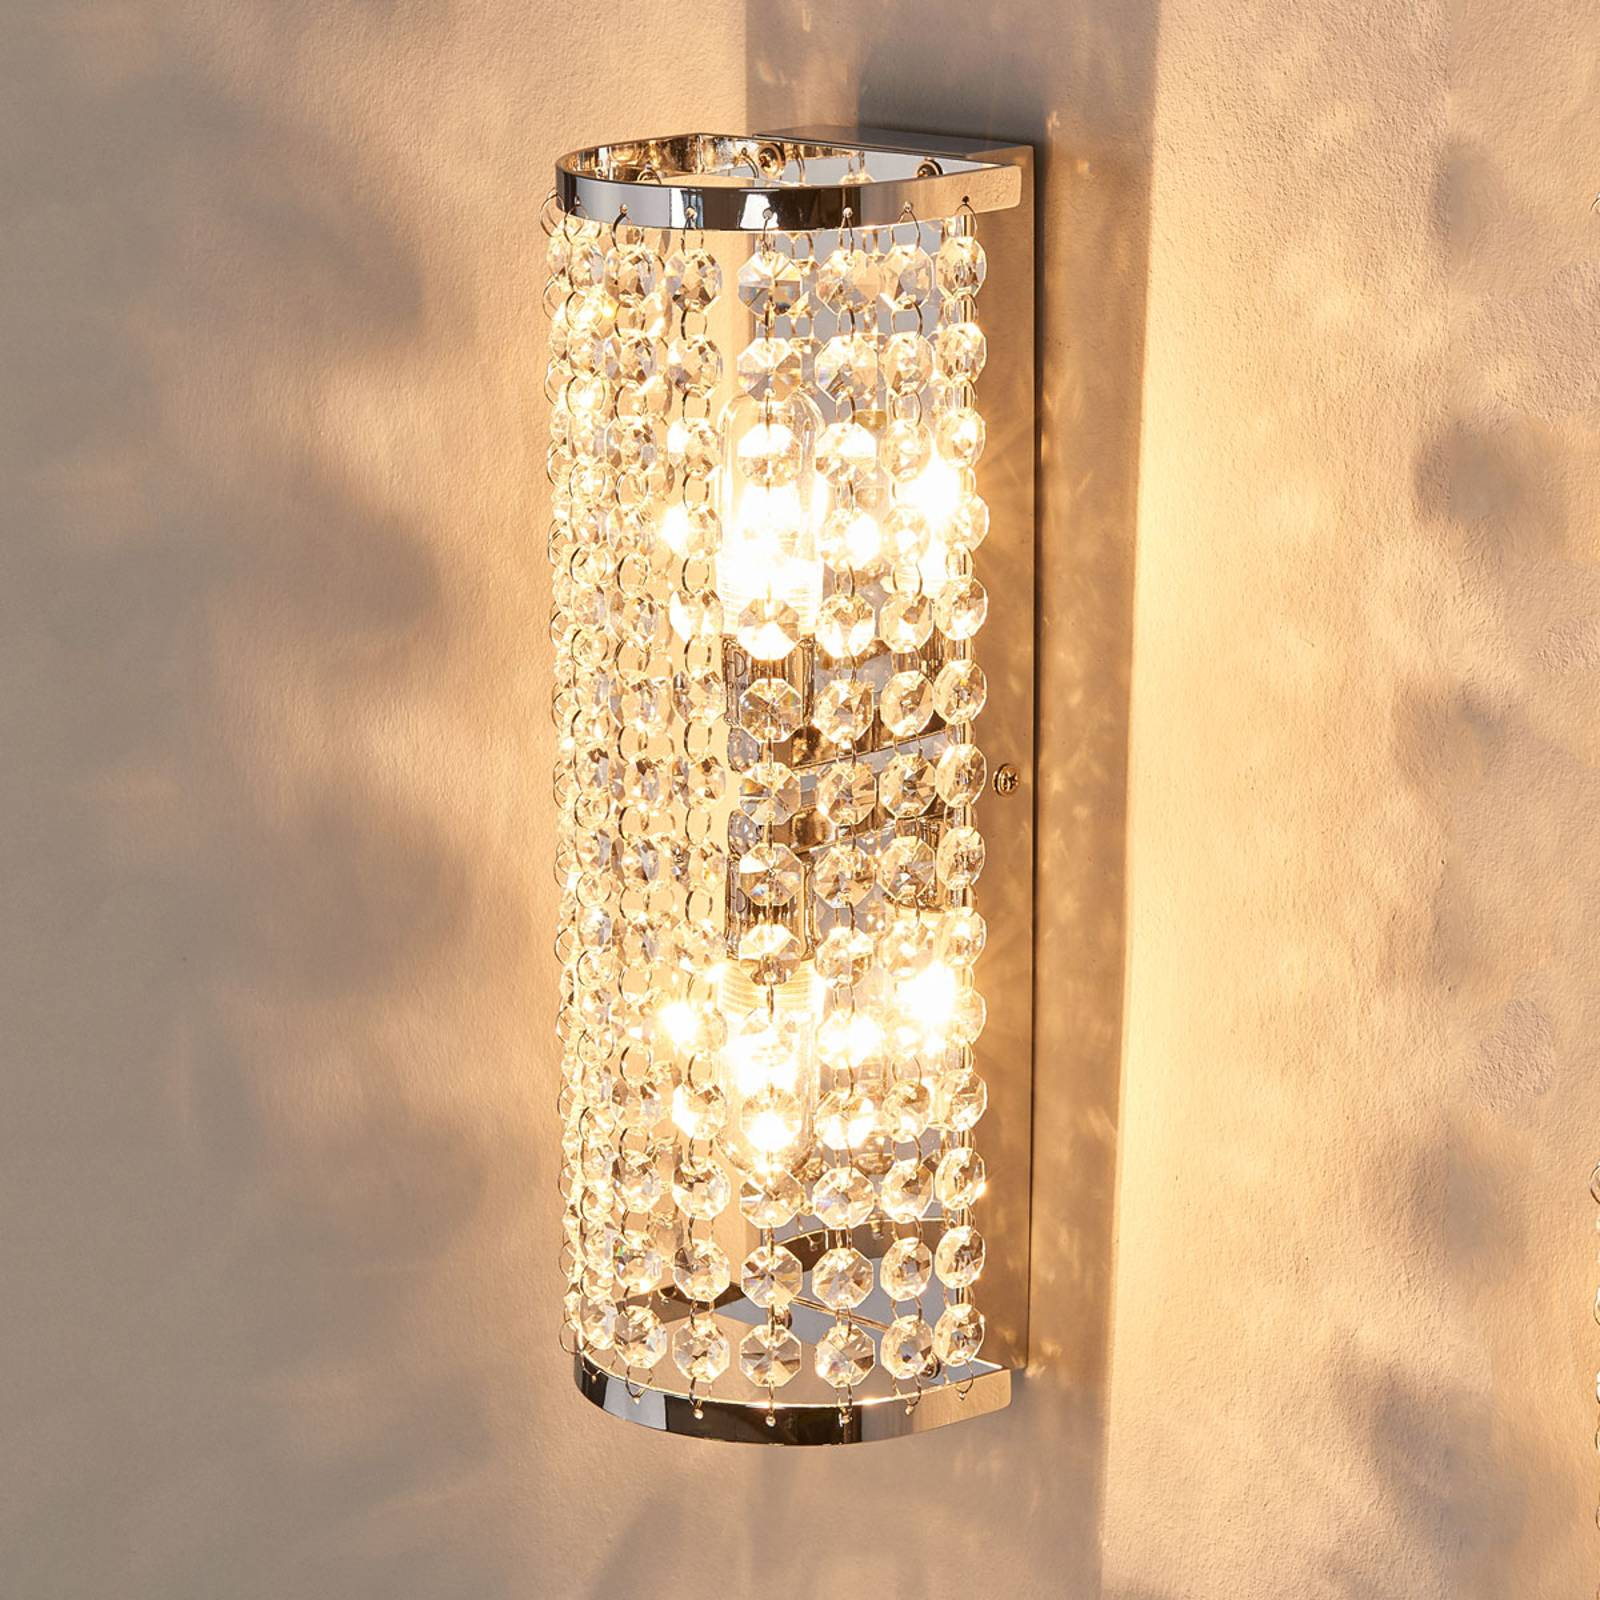 Also for the bathroom - Lysekil wall light, IP44 from Markslöjd